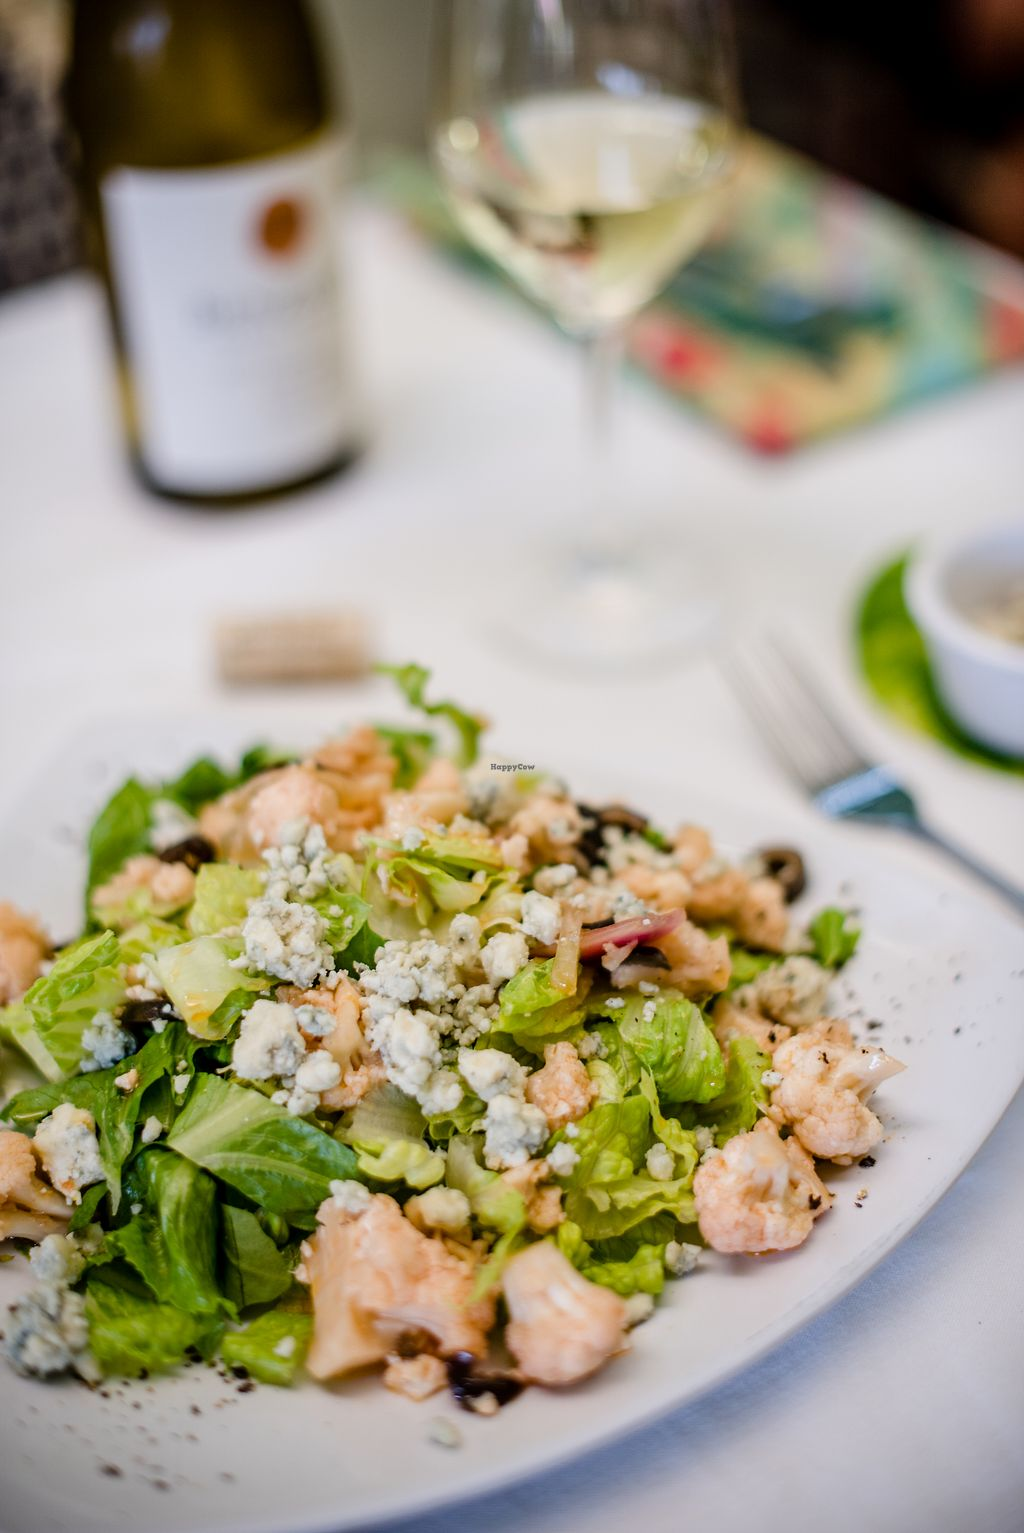 """Photo of Lime Inn Bar & Restaurant  by <a href=""""/members/profile/limeinn"""">limeinn</a> <br/>Our delicious Bermuda Salad! <br/> February 9, 2018  - <a href='/contact/abuse/image/111522/356782'>Report</a>"""